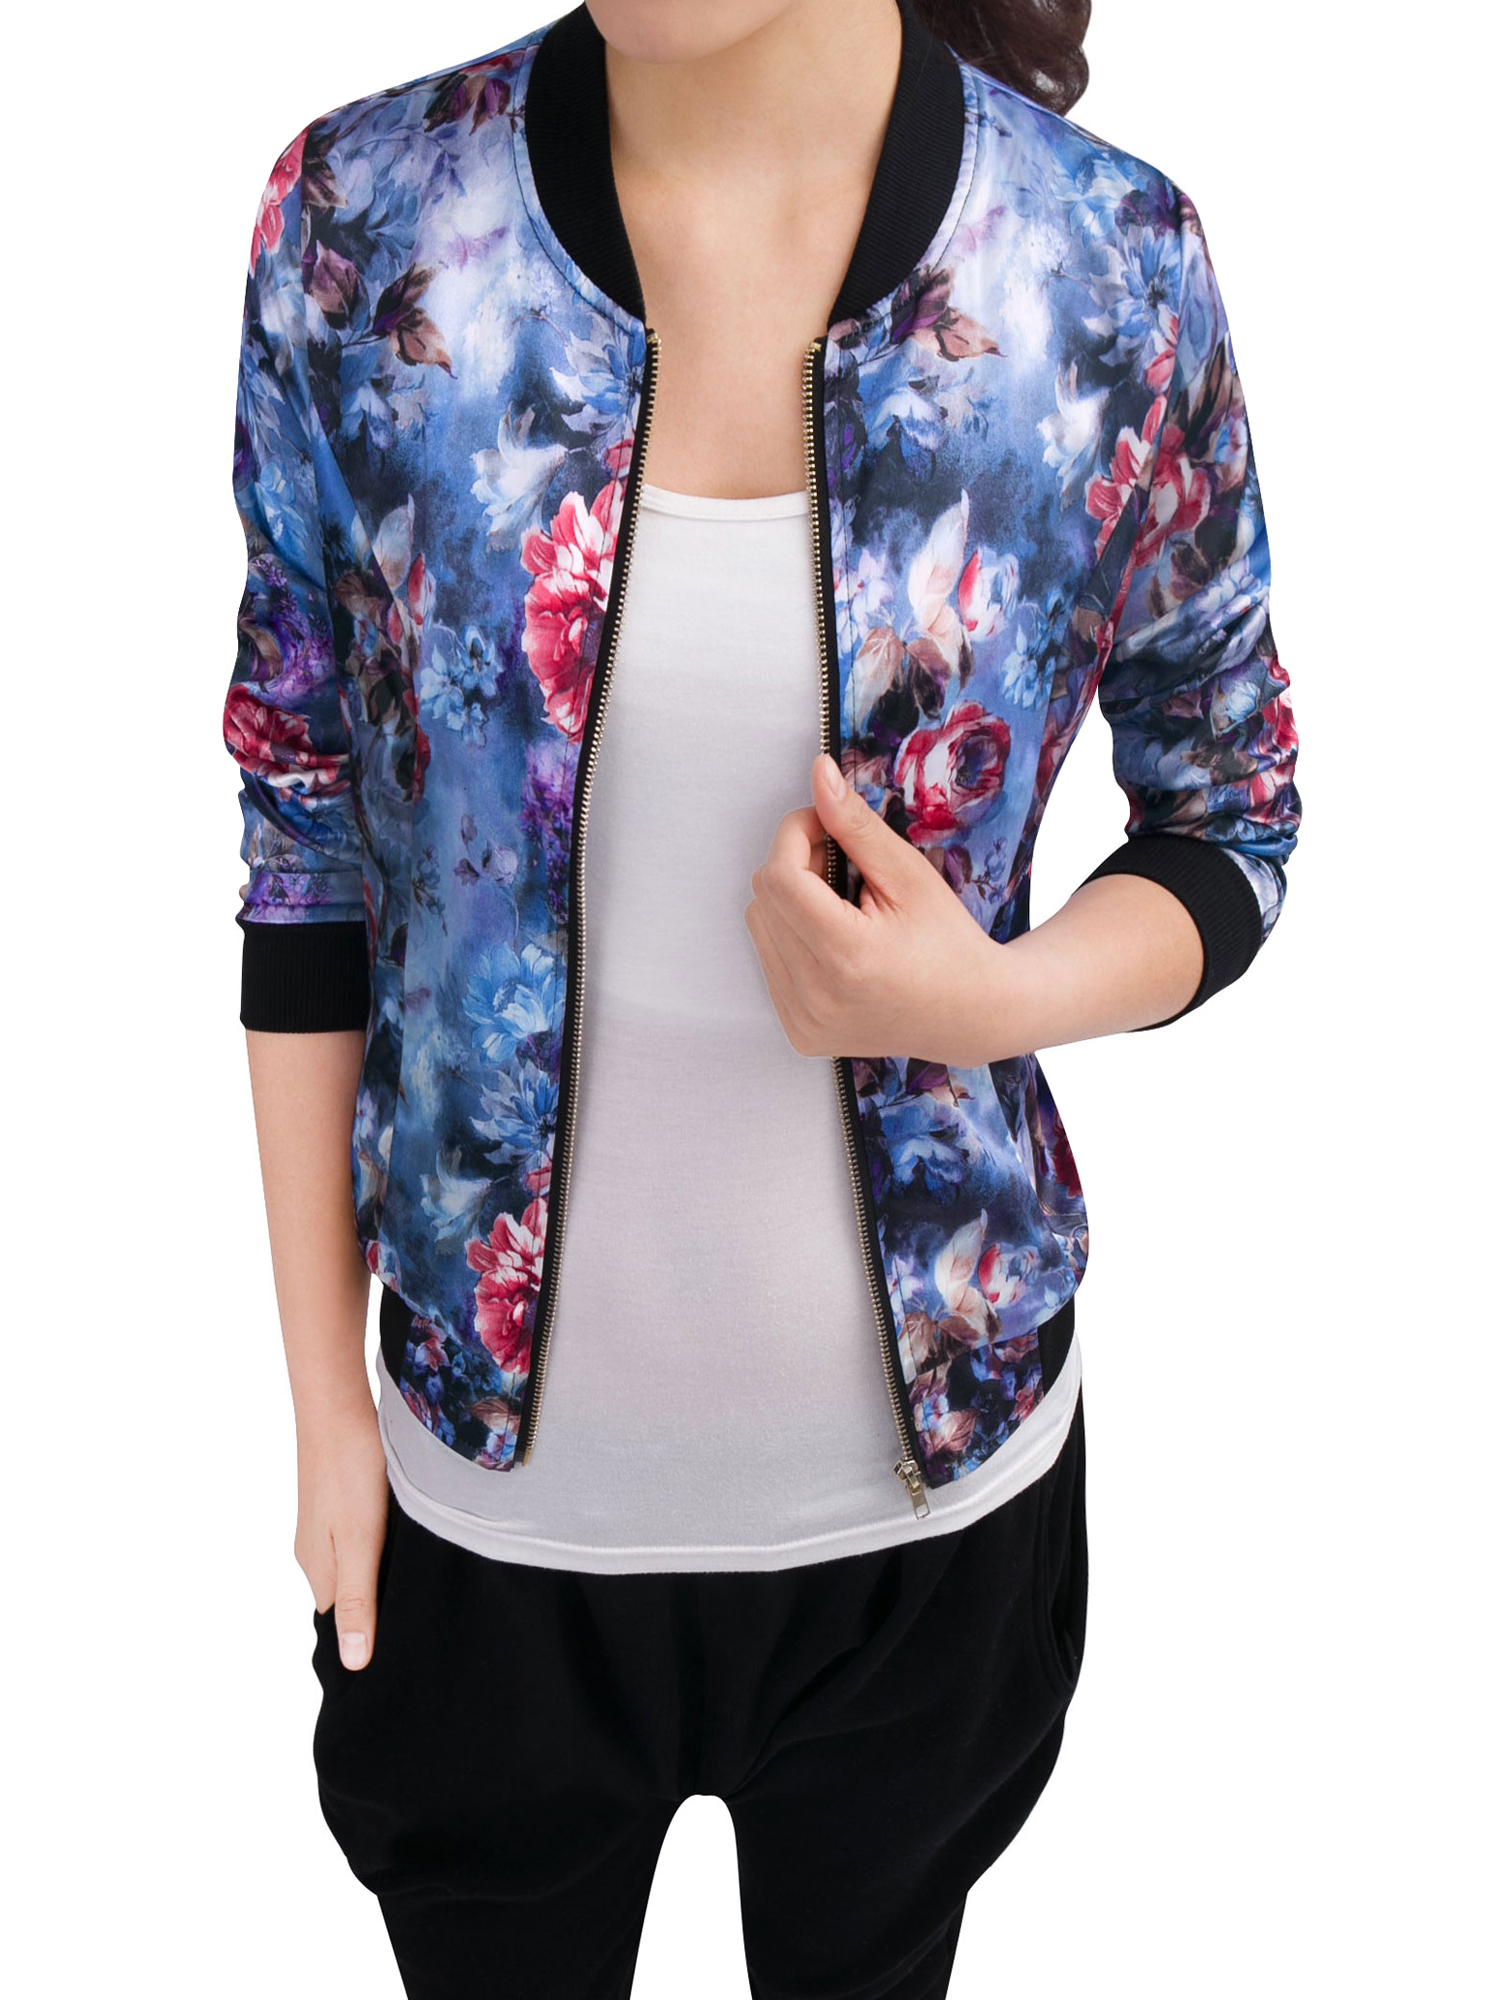 Women Long Sleeves Zipper Fly Flower Print Stylish Jacket Blue S